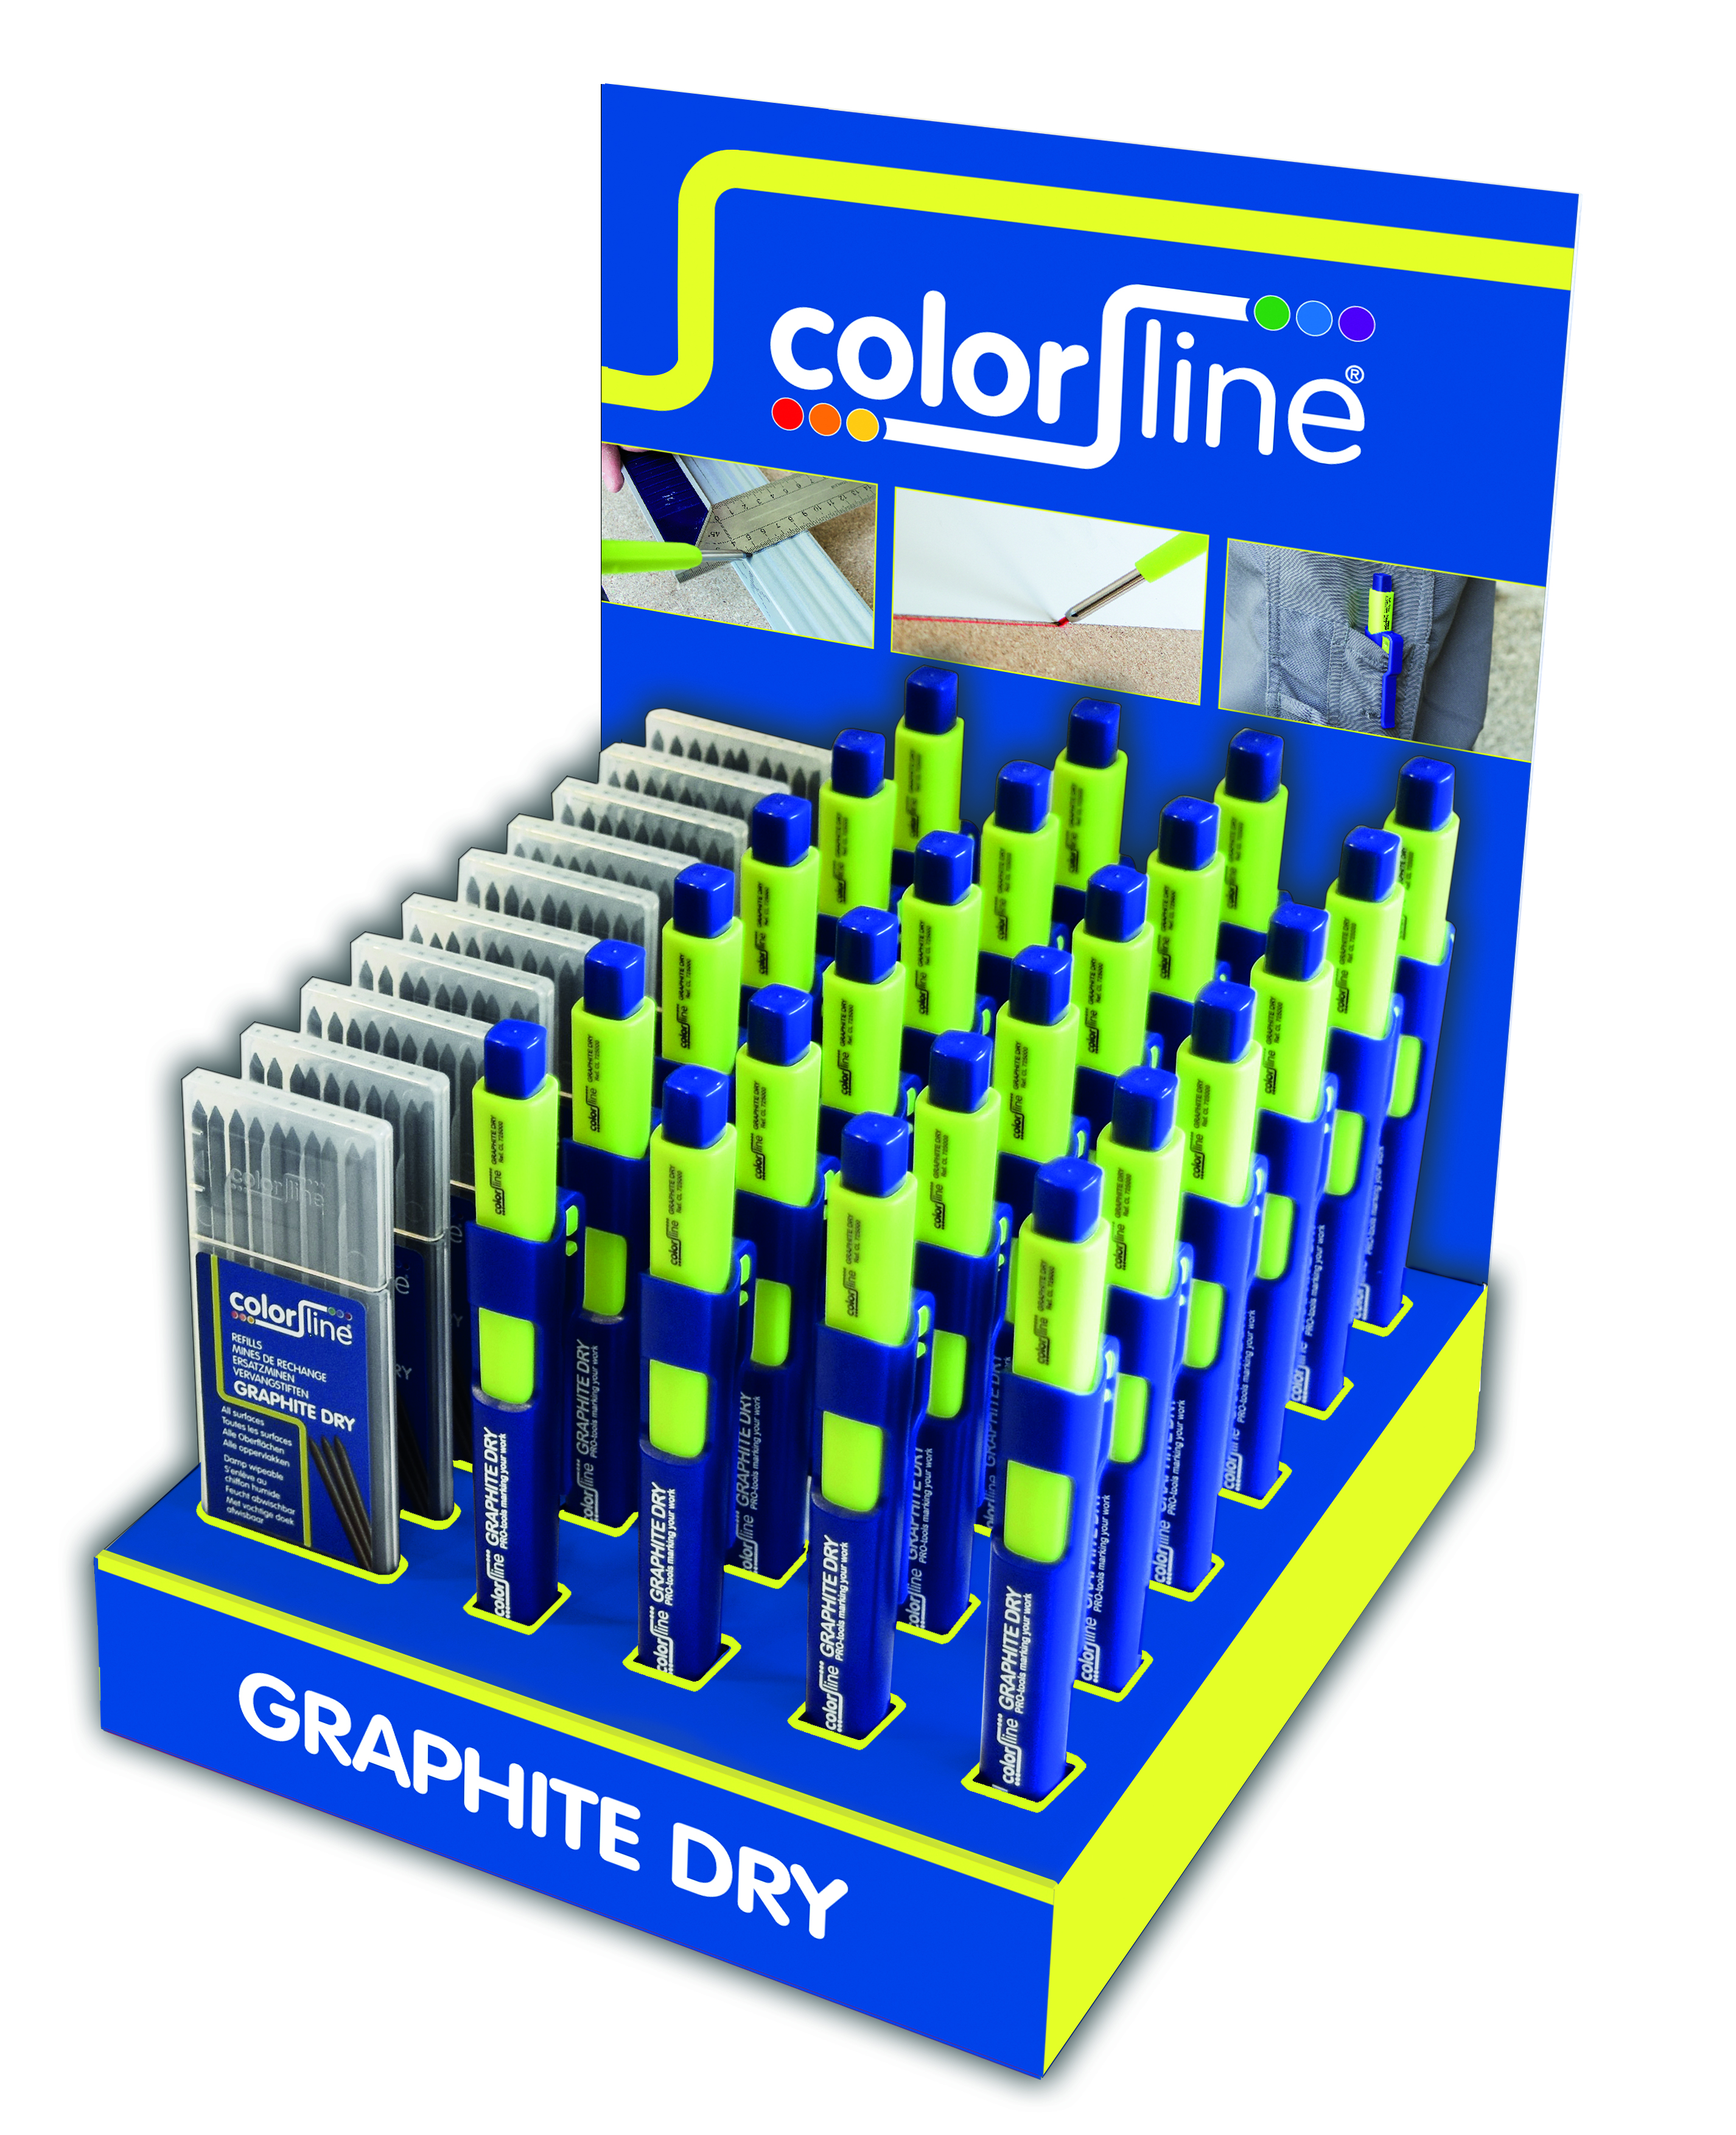 Assortiment de porte-mine et mines de rechange en display: 24 X Crayon GRAPHITE DRY + 10 x mines graphites